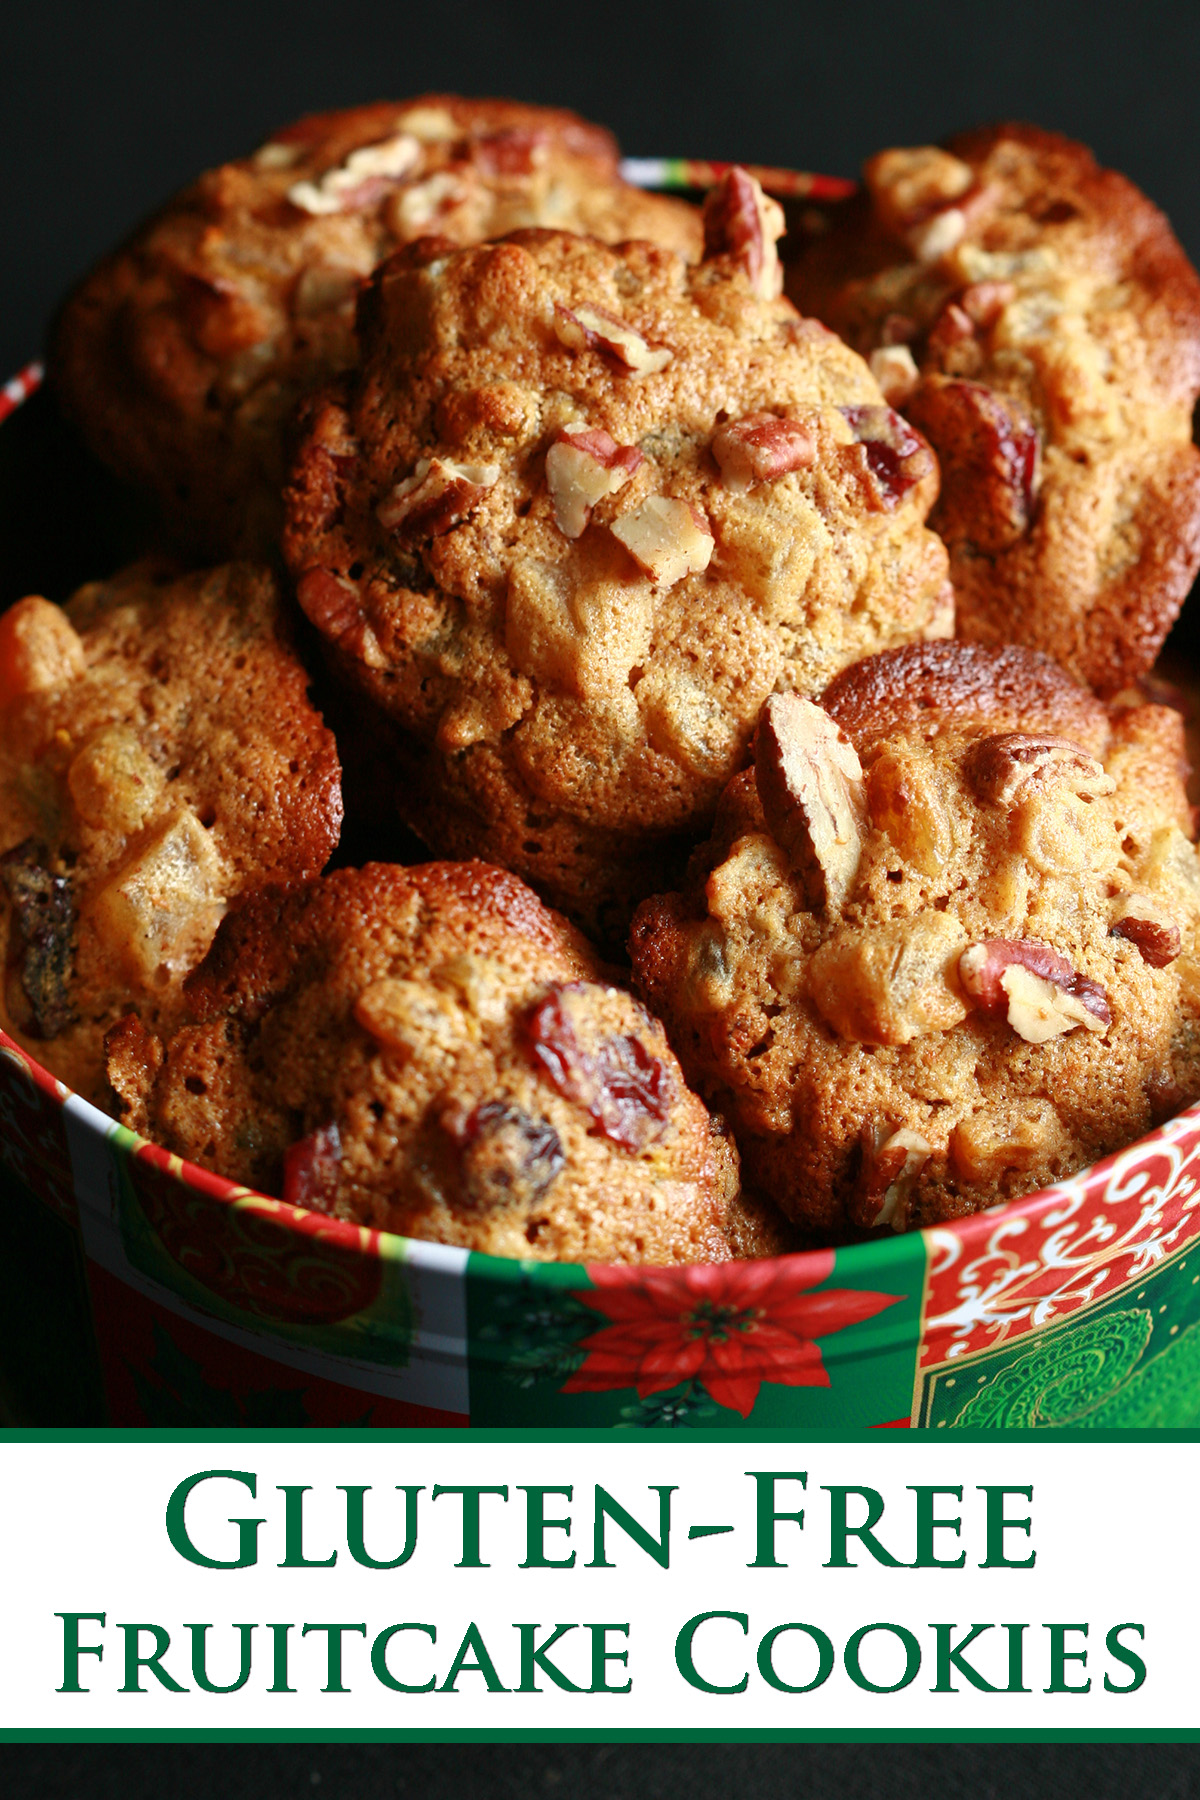 """https://celebrationgeneration.com/wp-content/uploads/2011/12/Gluten-Free-Fruitcake-Cookies-Pinterest.jpg"""" alt=""""A festive green and red holiday container is full of cookies. The cookies have visible pieces of fruits and nuts throughout."""